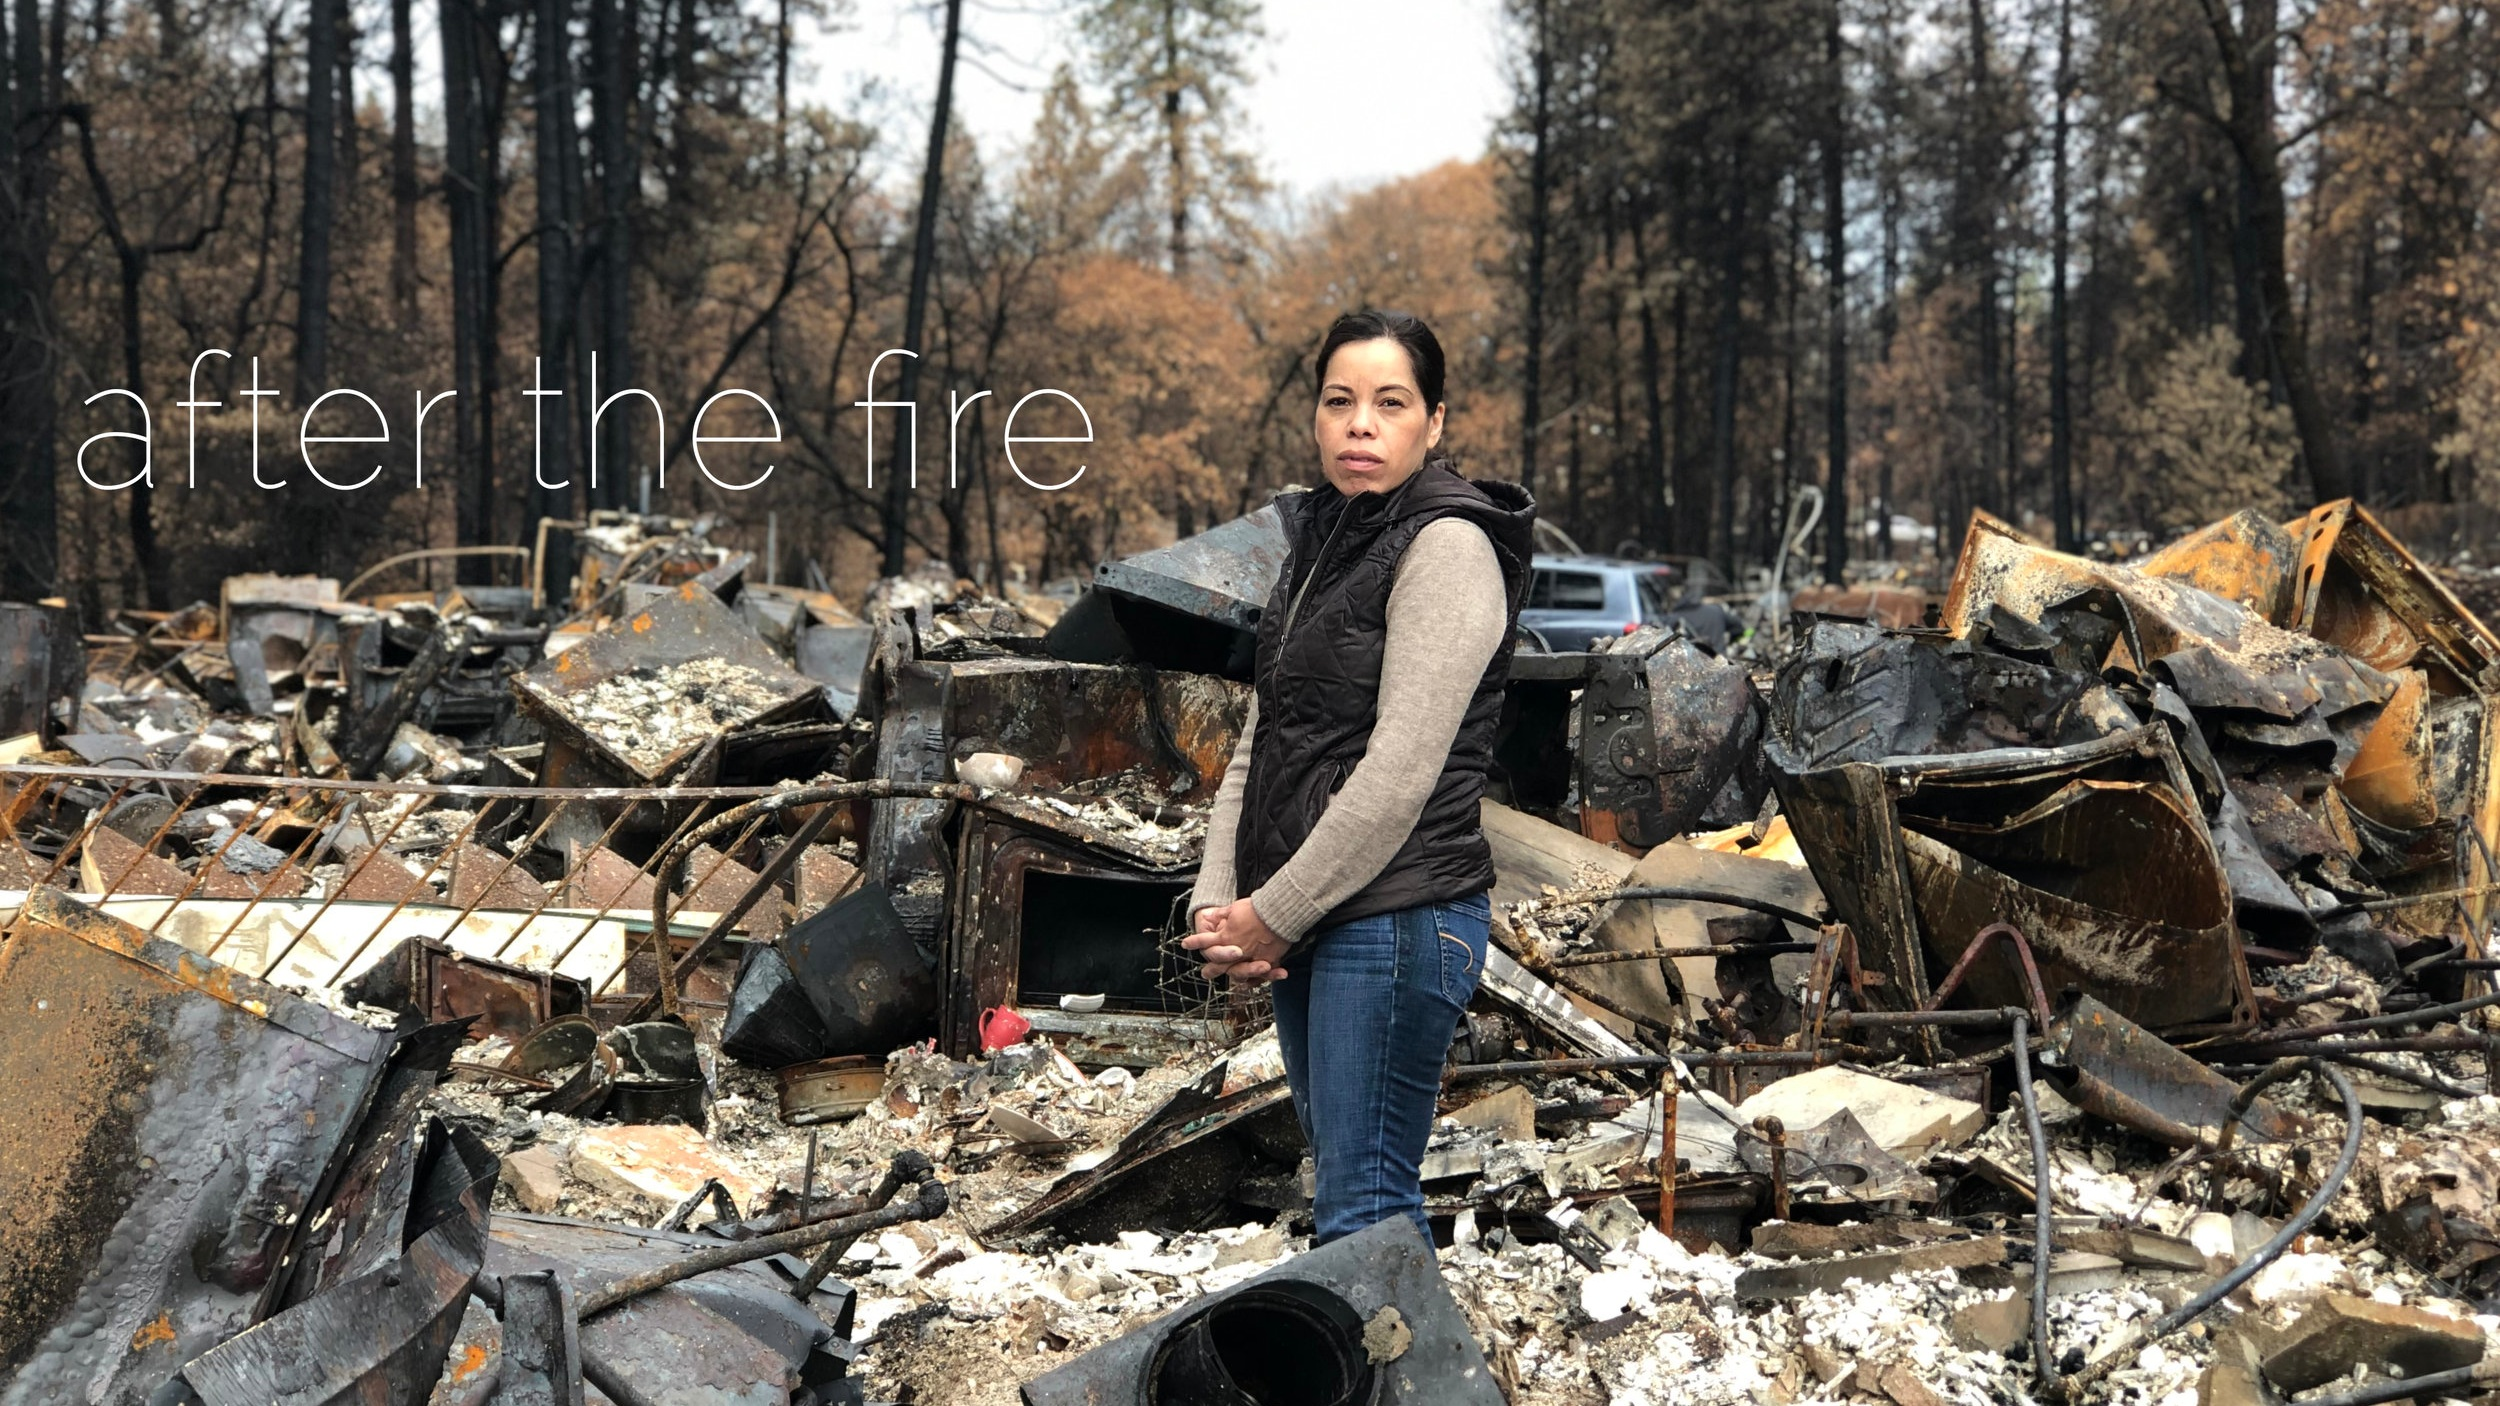 Norma Alicia Pérez survived the northern California fire with her two children. Just before Christmas she was finally able to visit their home and see the damage first hand. She plans to move to another city and start over